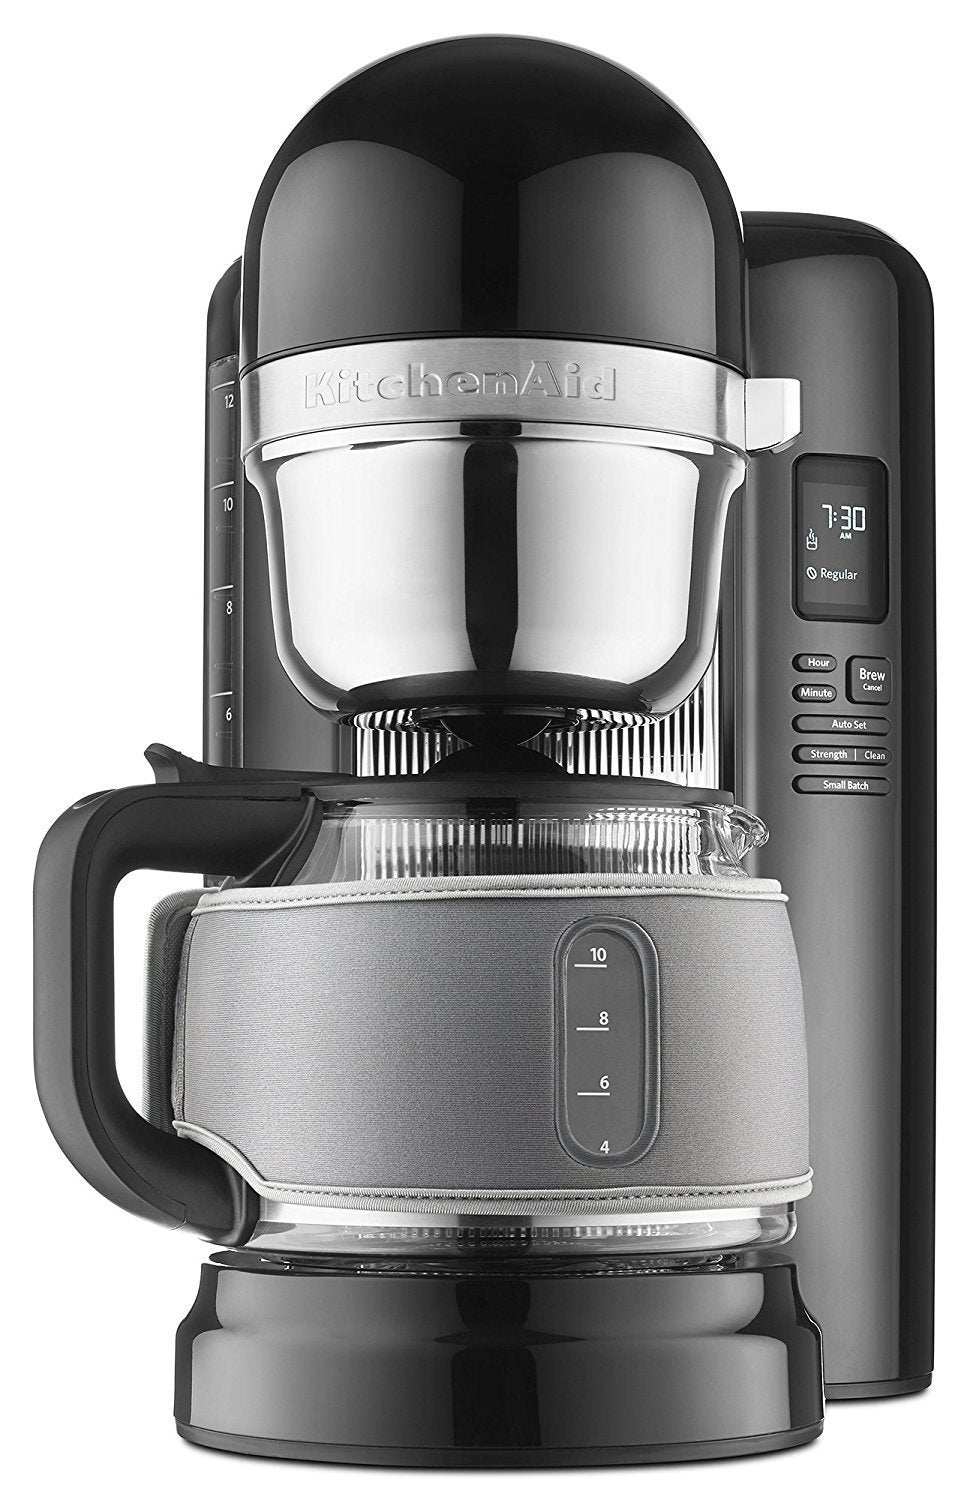 KitchenAid KCMB1204GOB 12-Cup Coffee Maker with One Touch Brewing with Grey  Thermal Sleeve - Onyx Black